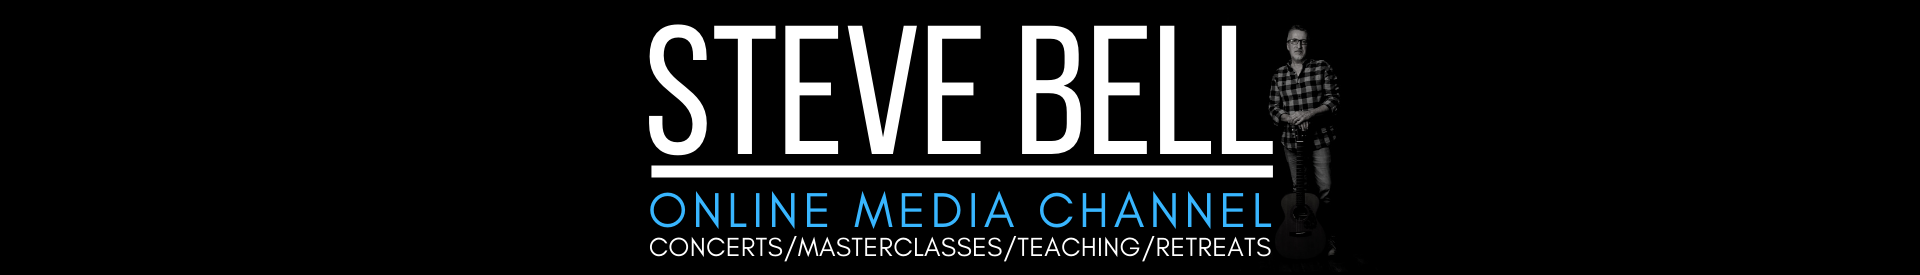 Steve Bell Online Media Channel